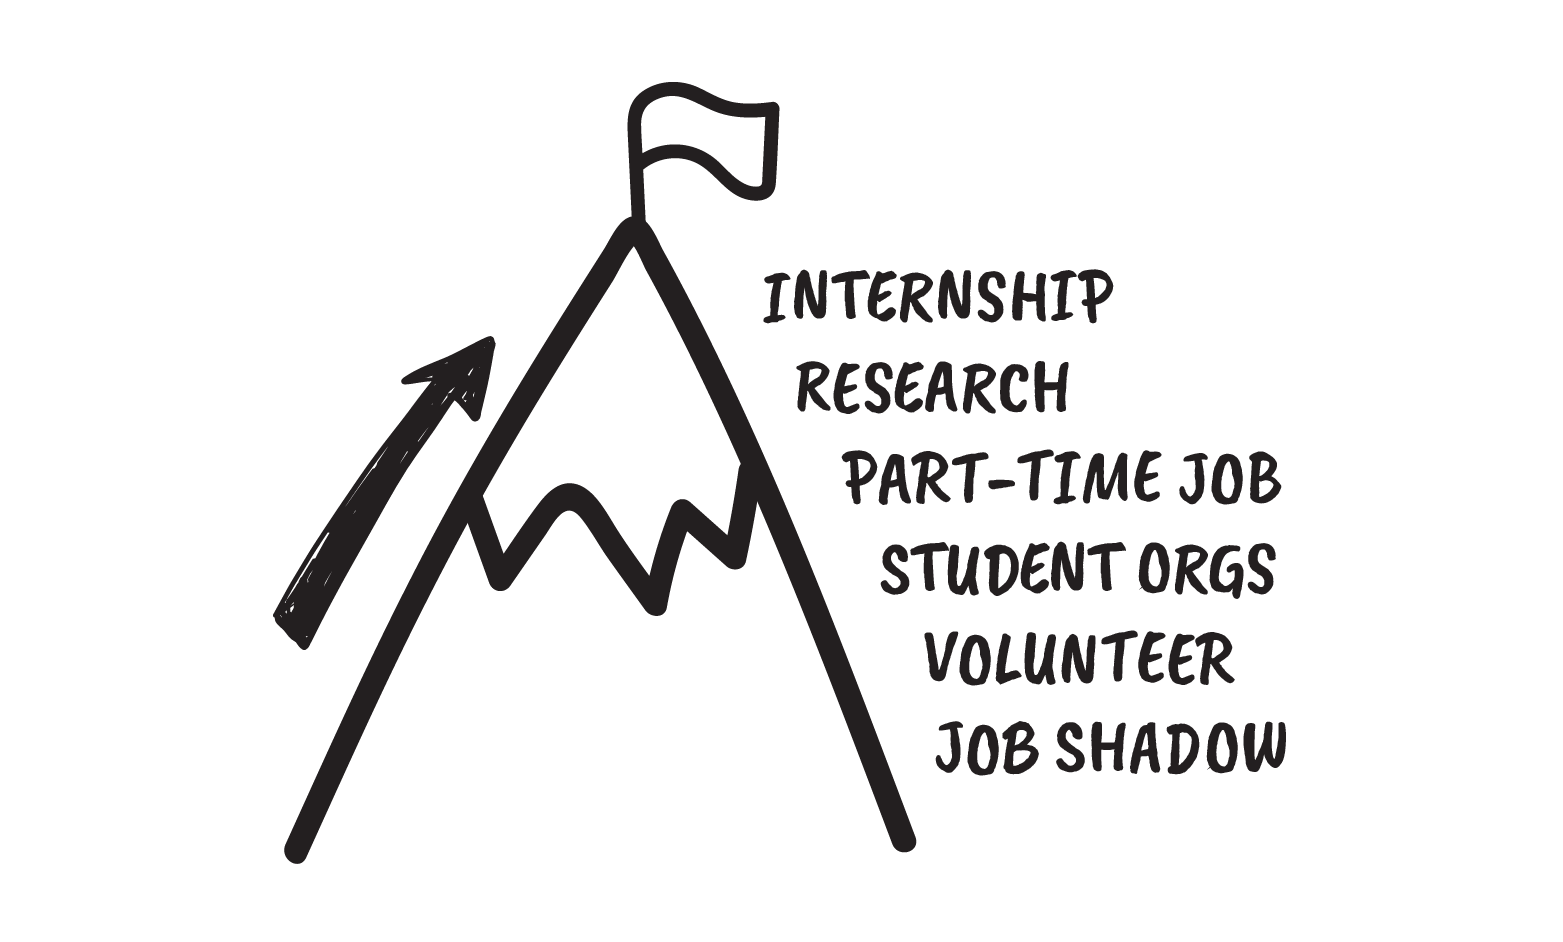 Image of Mountain with cascading words internships, research, part-time job, student organizations, volunteer and job shadow